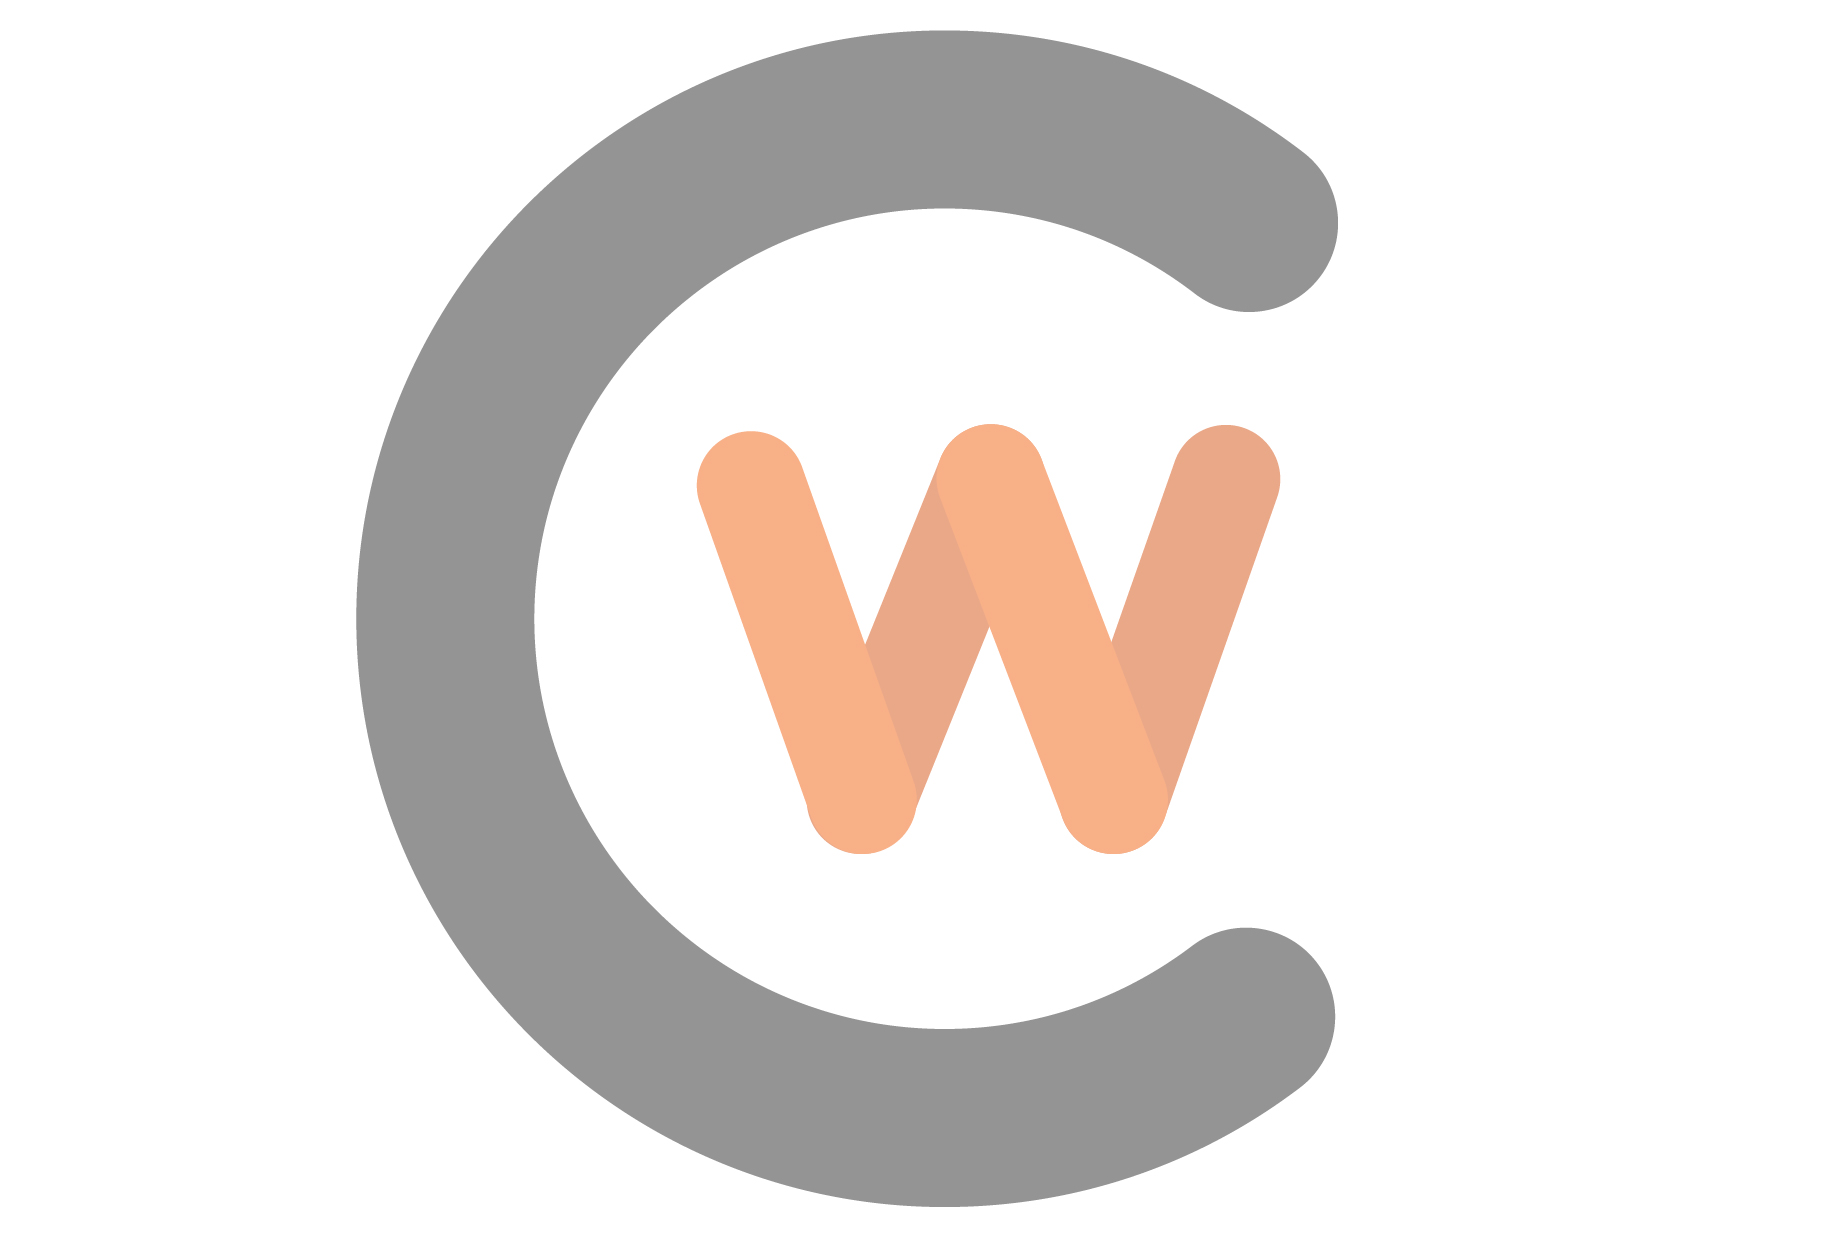 Faded cw logo